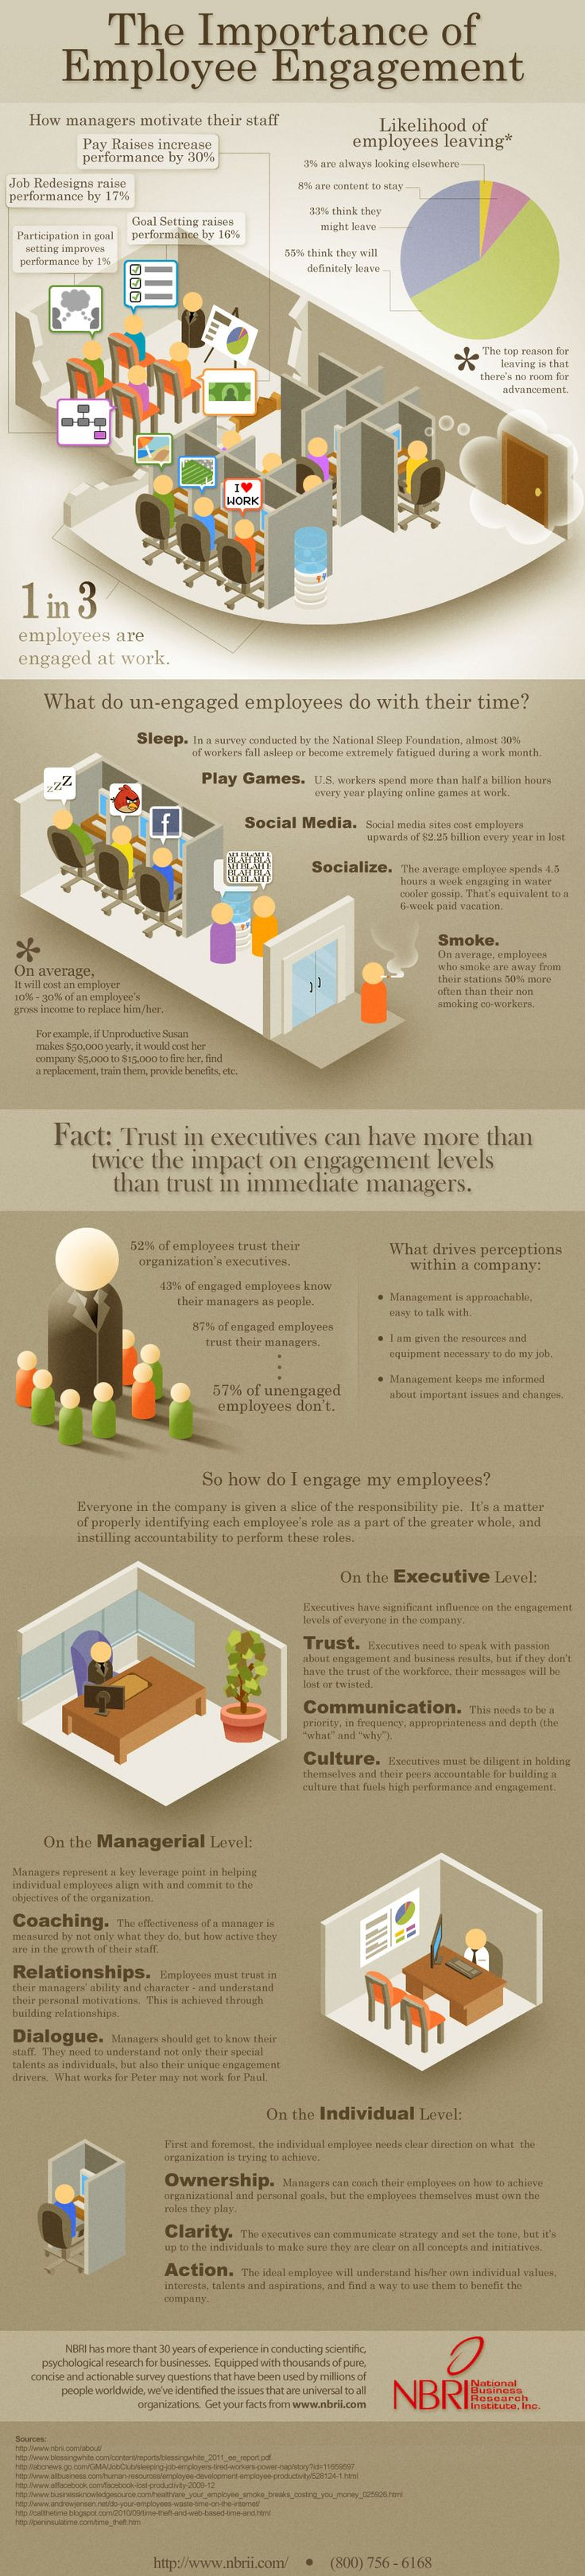 Constructive Work Space | The Importance of Employee Engagement                                                                                                                                                      More